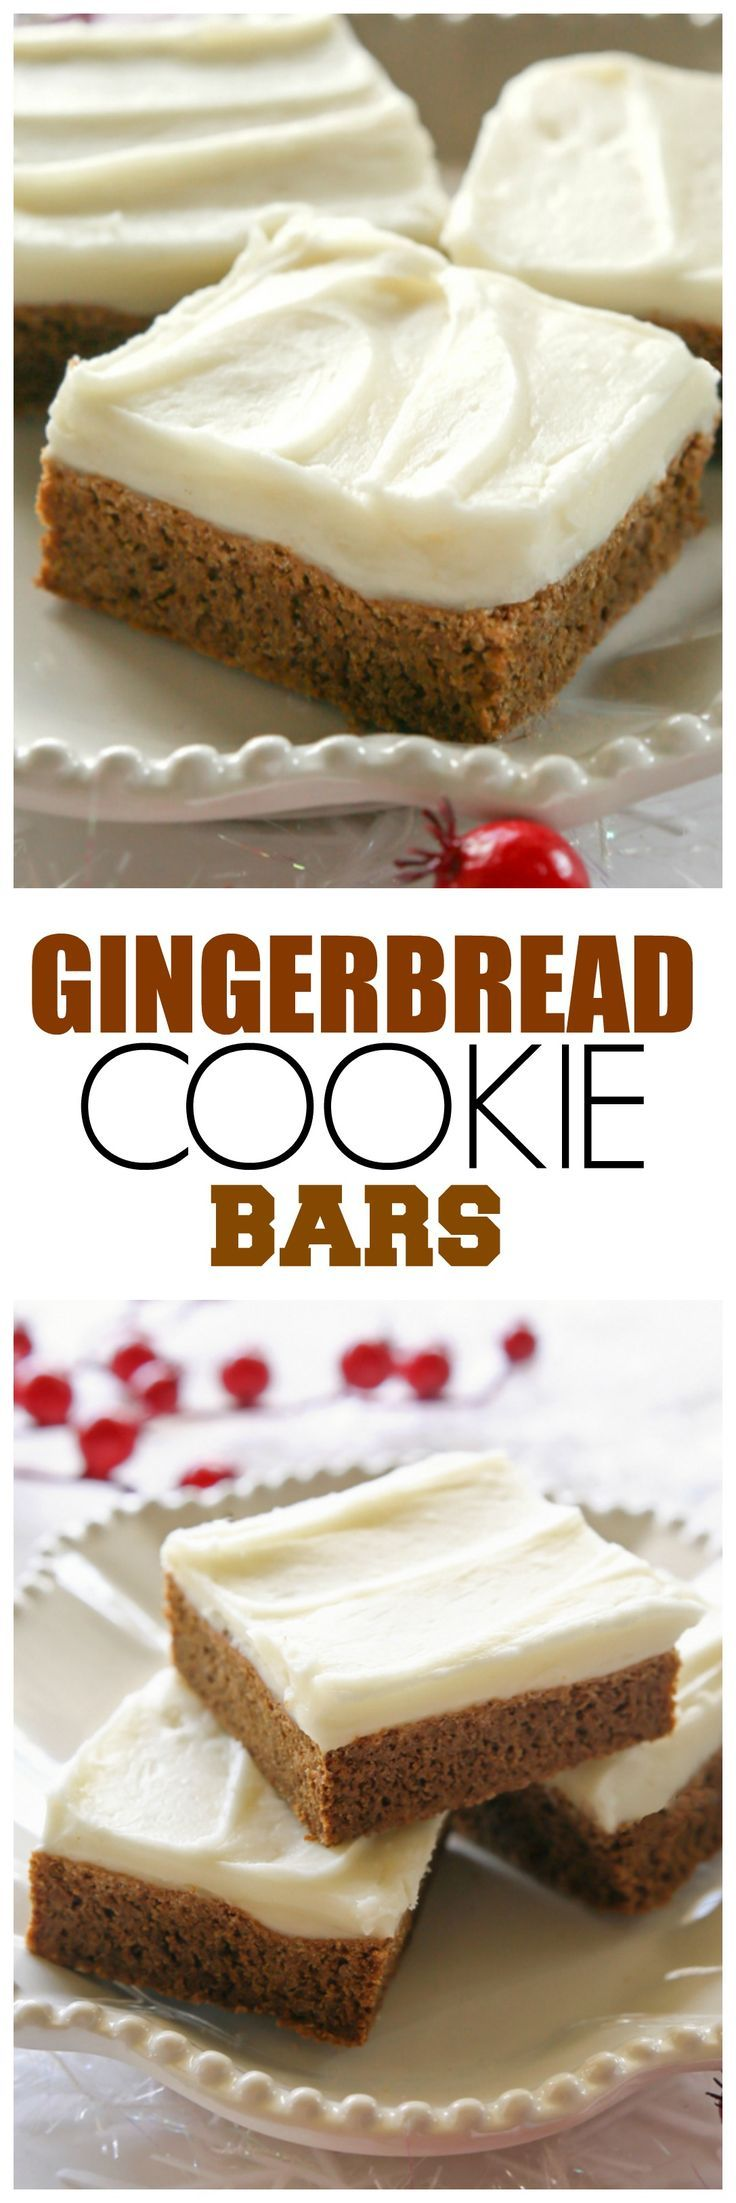 Gingerbread Cookie Bars - incredibly soft and chewy. Way easier than making gingerbread men.